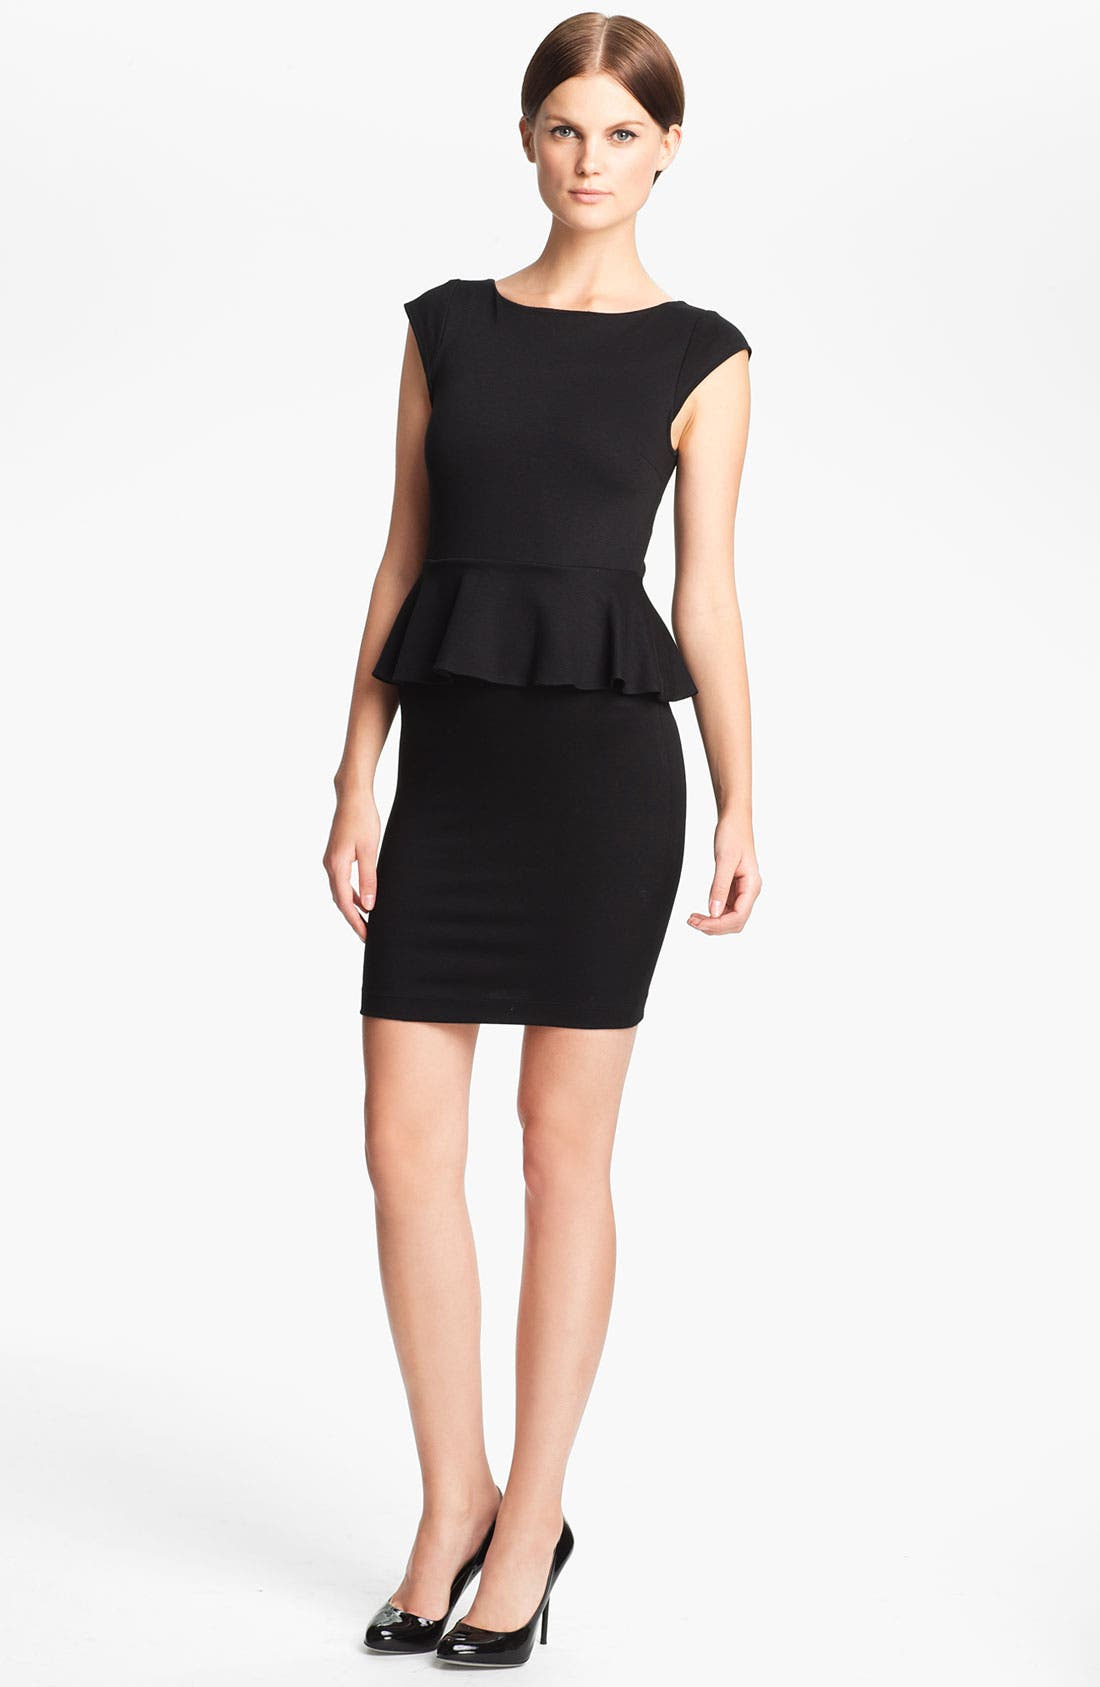 Alternate Image 1 Selected - Alice + Olivia 'Victoria' Peplum Dress